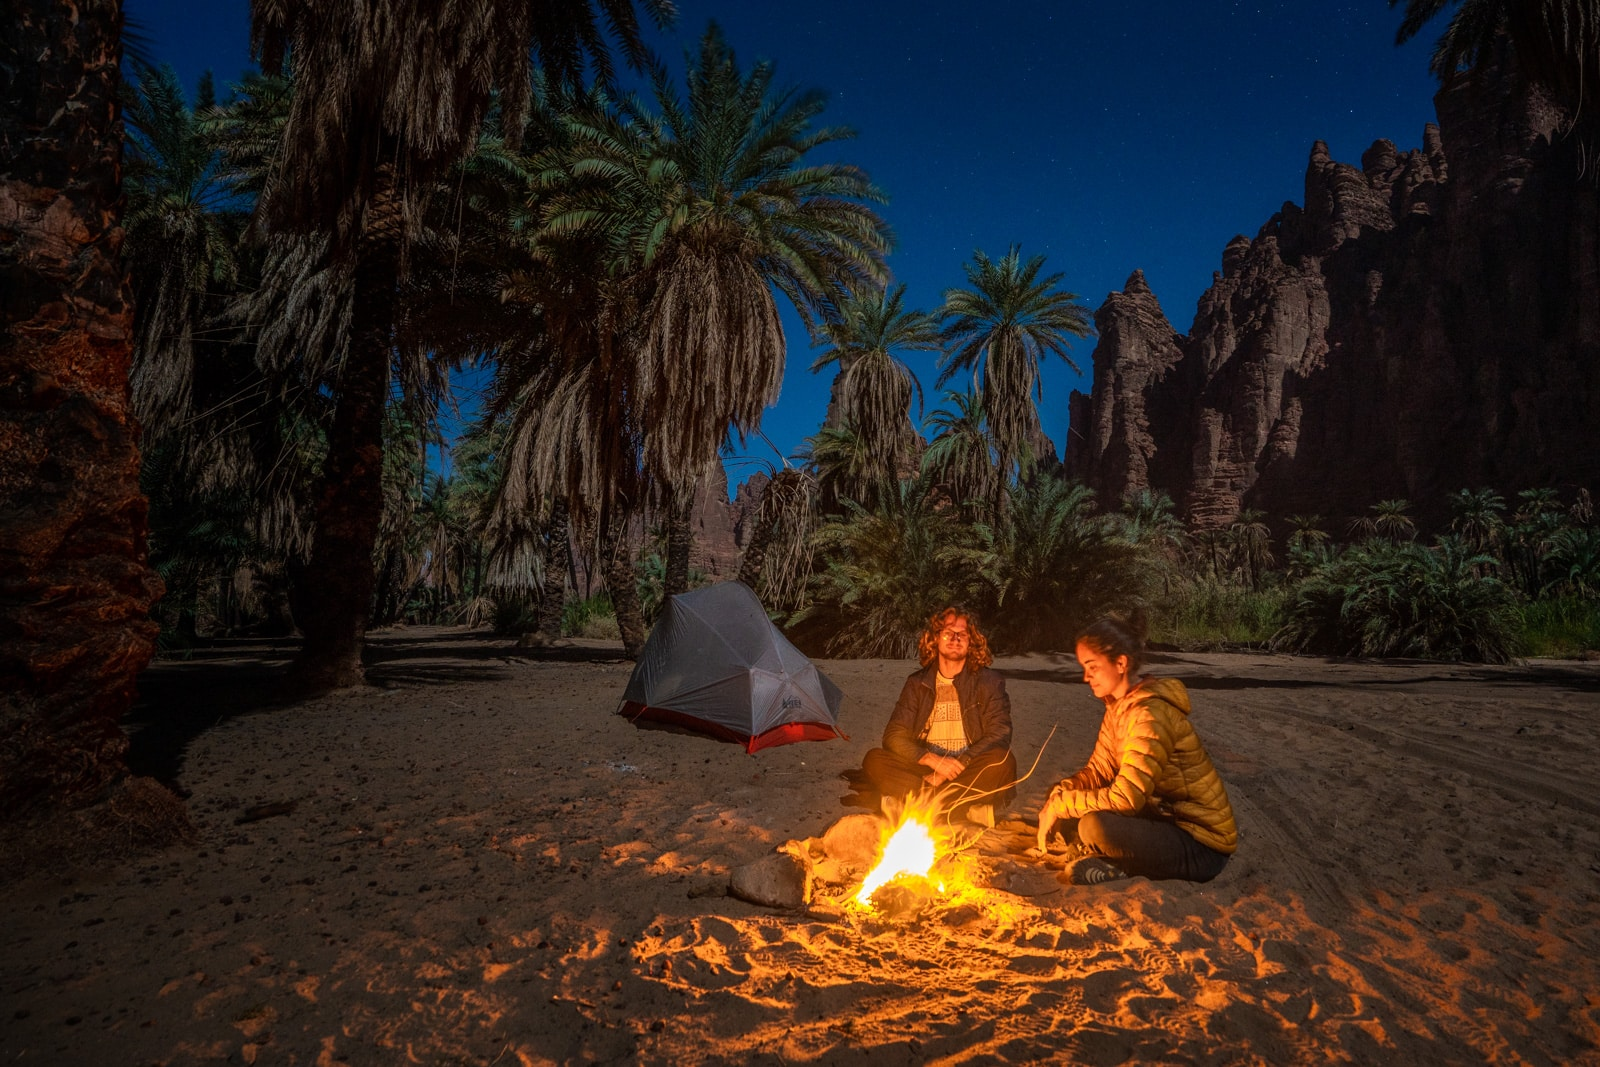 Camping in Wadi Disah, Saudi Arabia